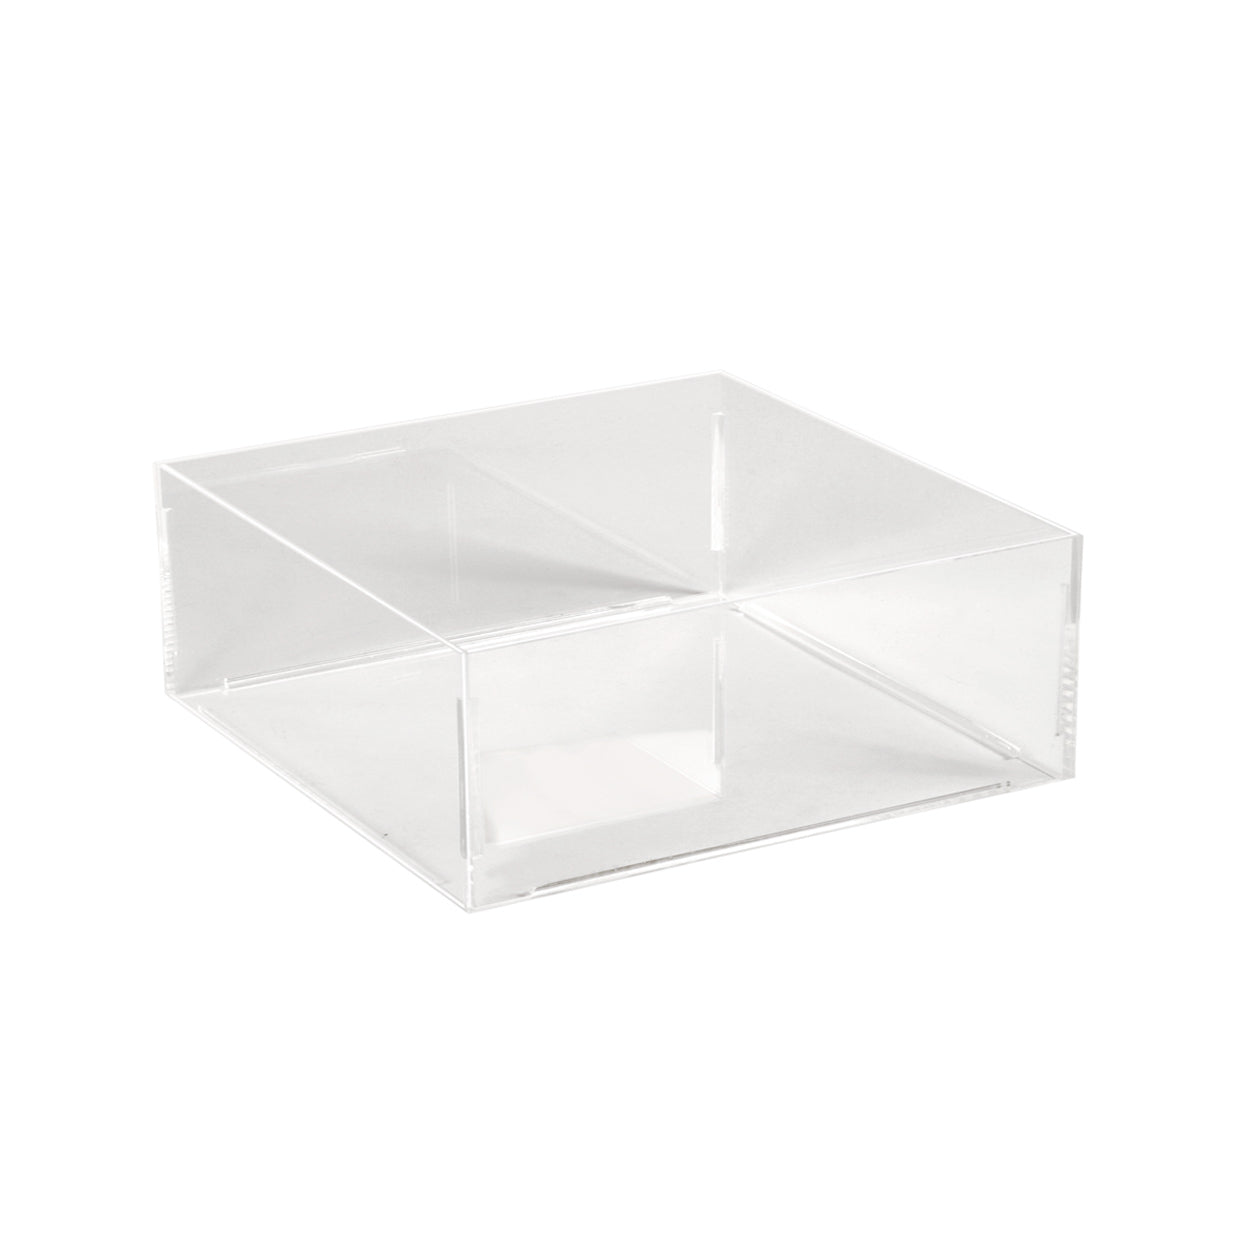 Acrylic container square  200 x 200 x 100 mm H M2715CA